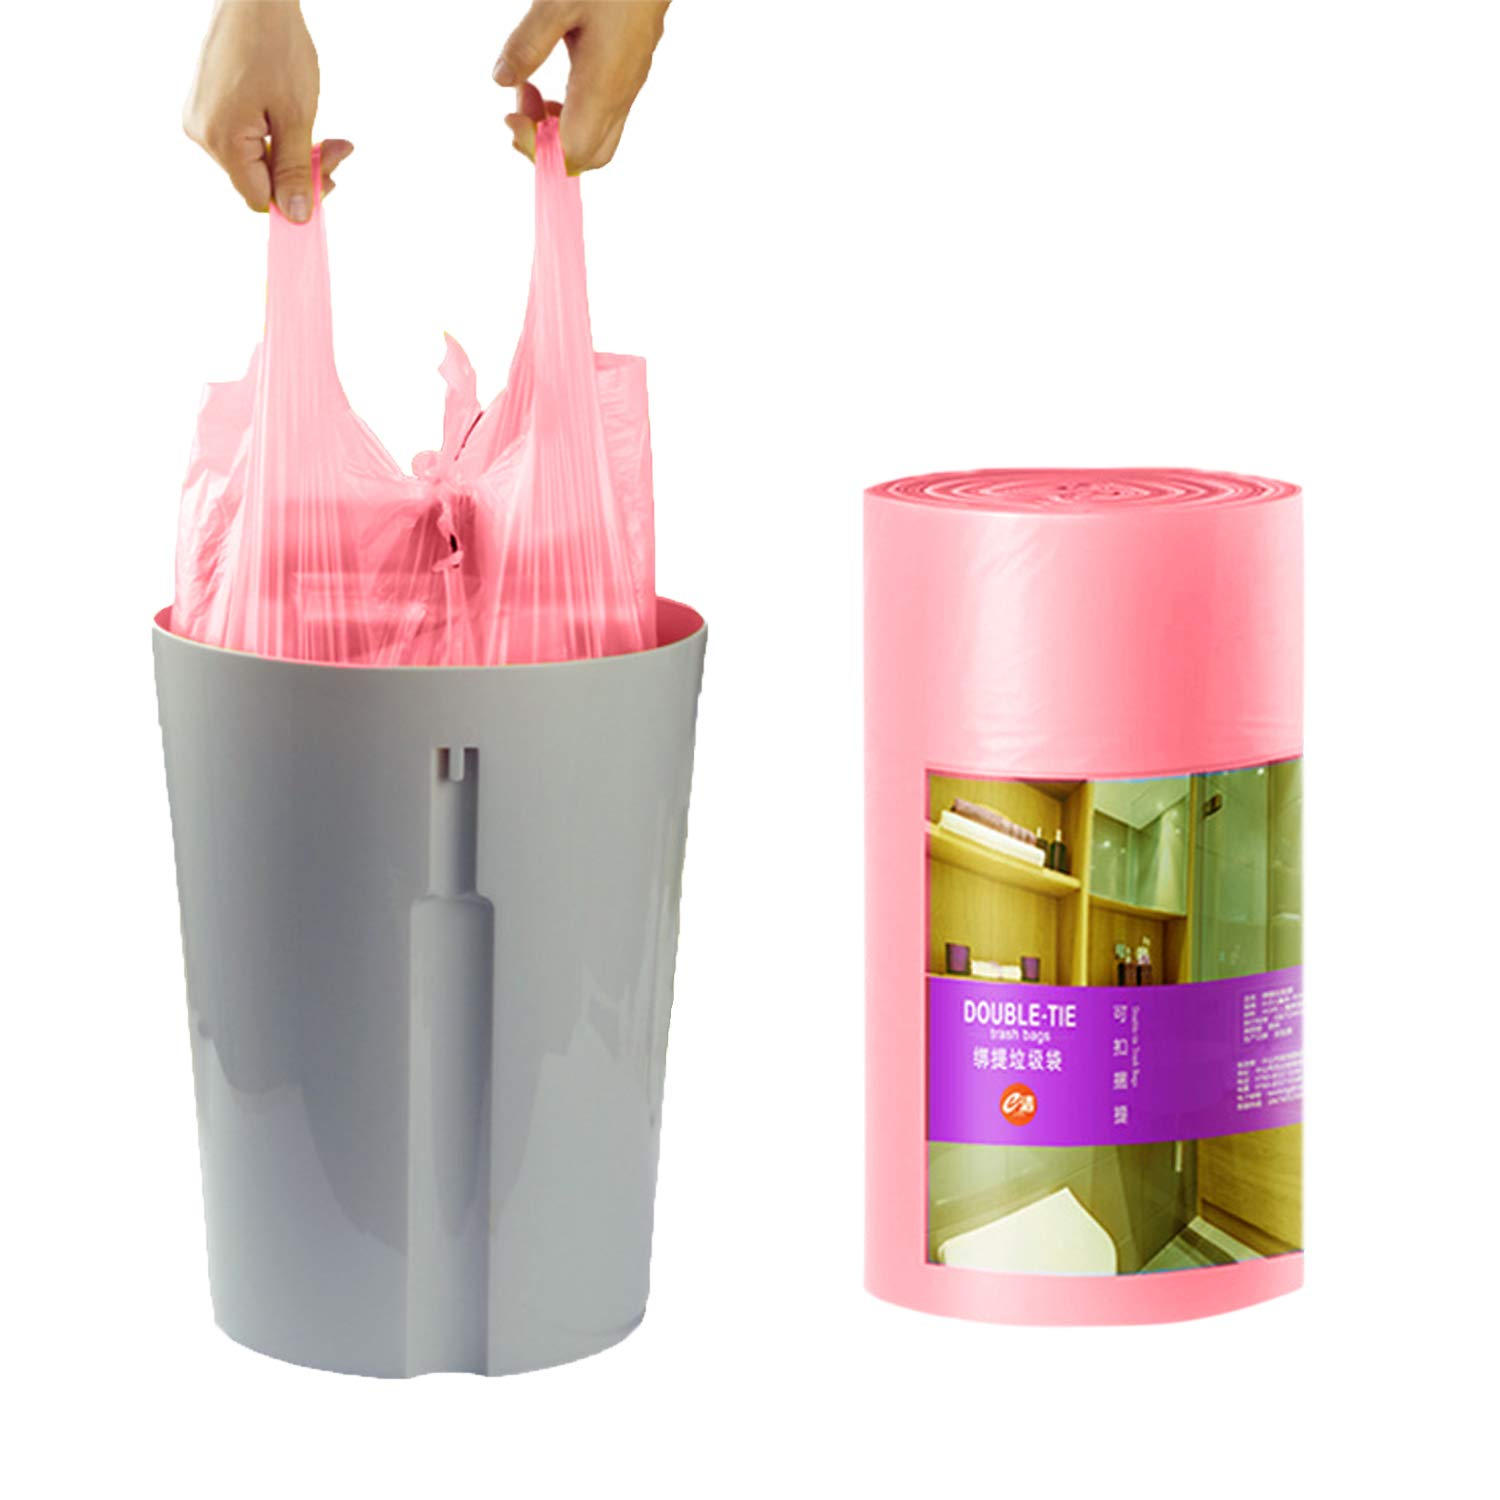 Small Garbage Bags 4 Gallon pink Kitchen Trash Bags, 90 Counts,Durable Multipurpose Everyday Use Trash Liners for Bathroom, Bedroom, Home, Office, Car,Trash Cans, Biodegradable Waste bin Bags